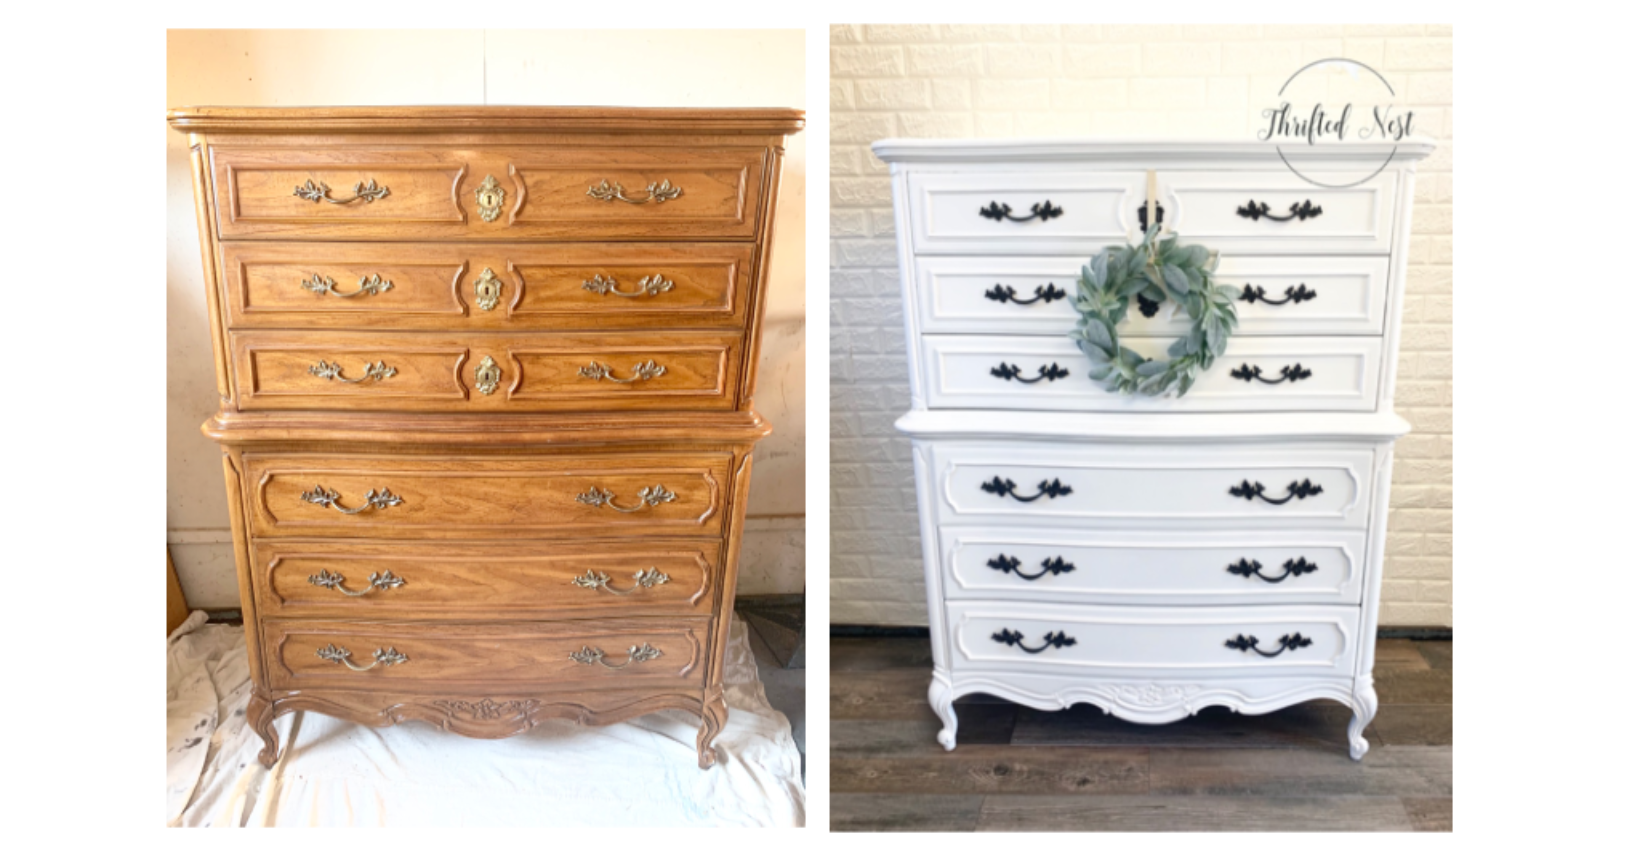 DIY White Painted Dresser | How to Paint Furniture White - Thrifted Nest #spraypainting